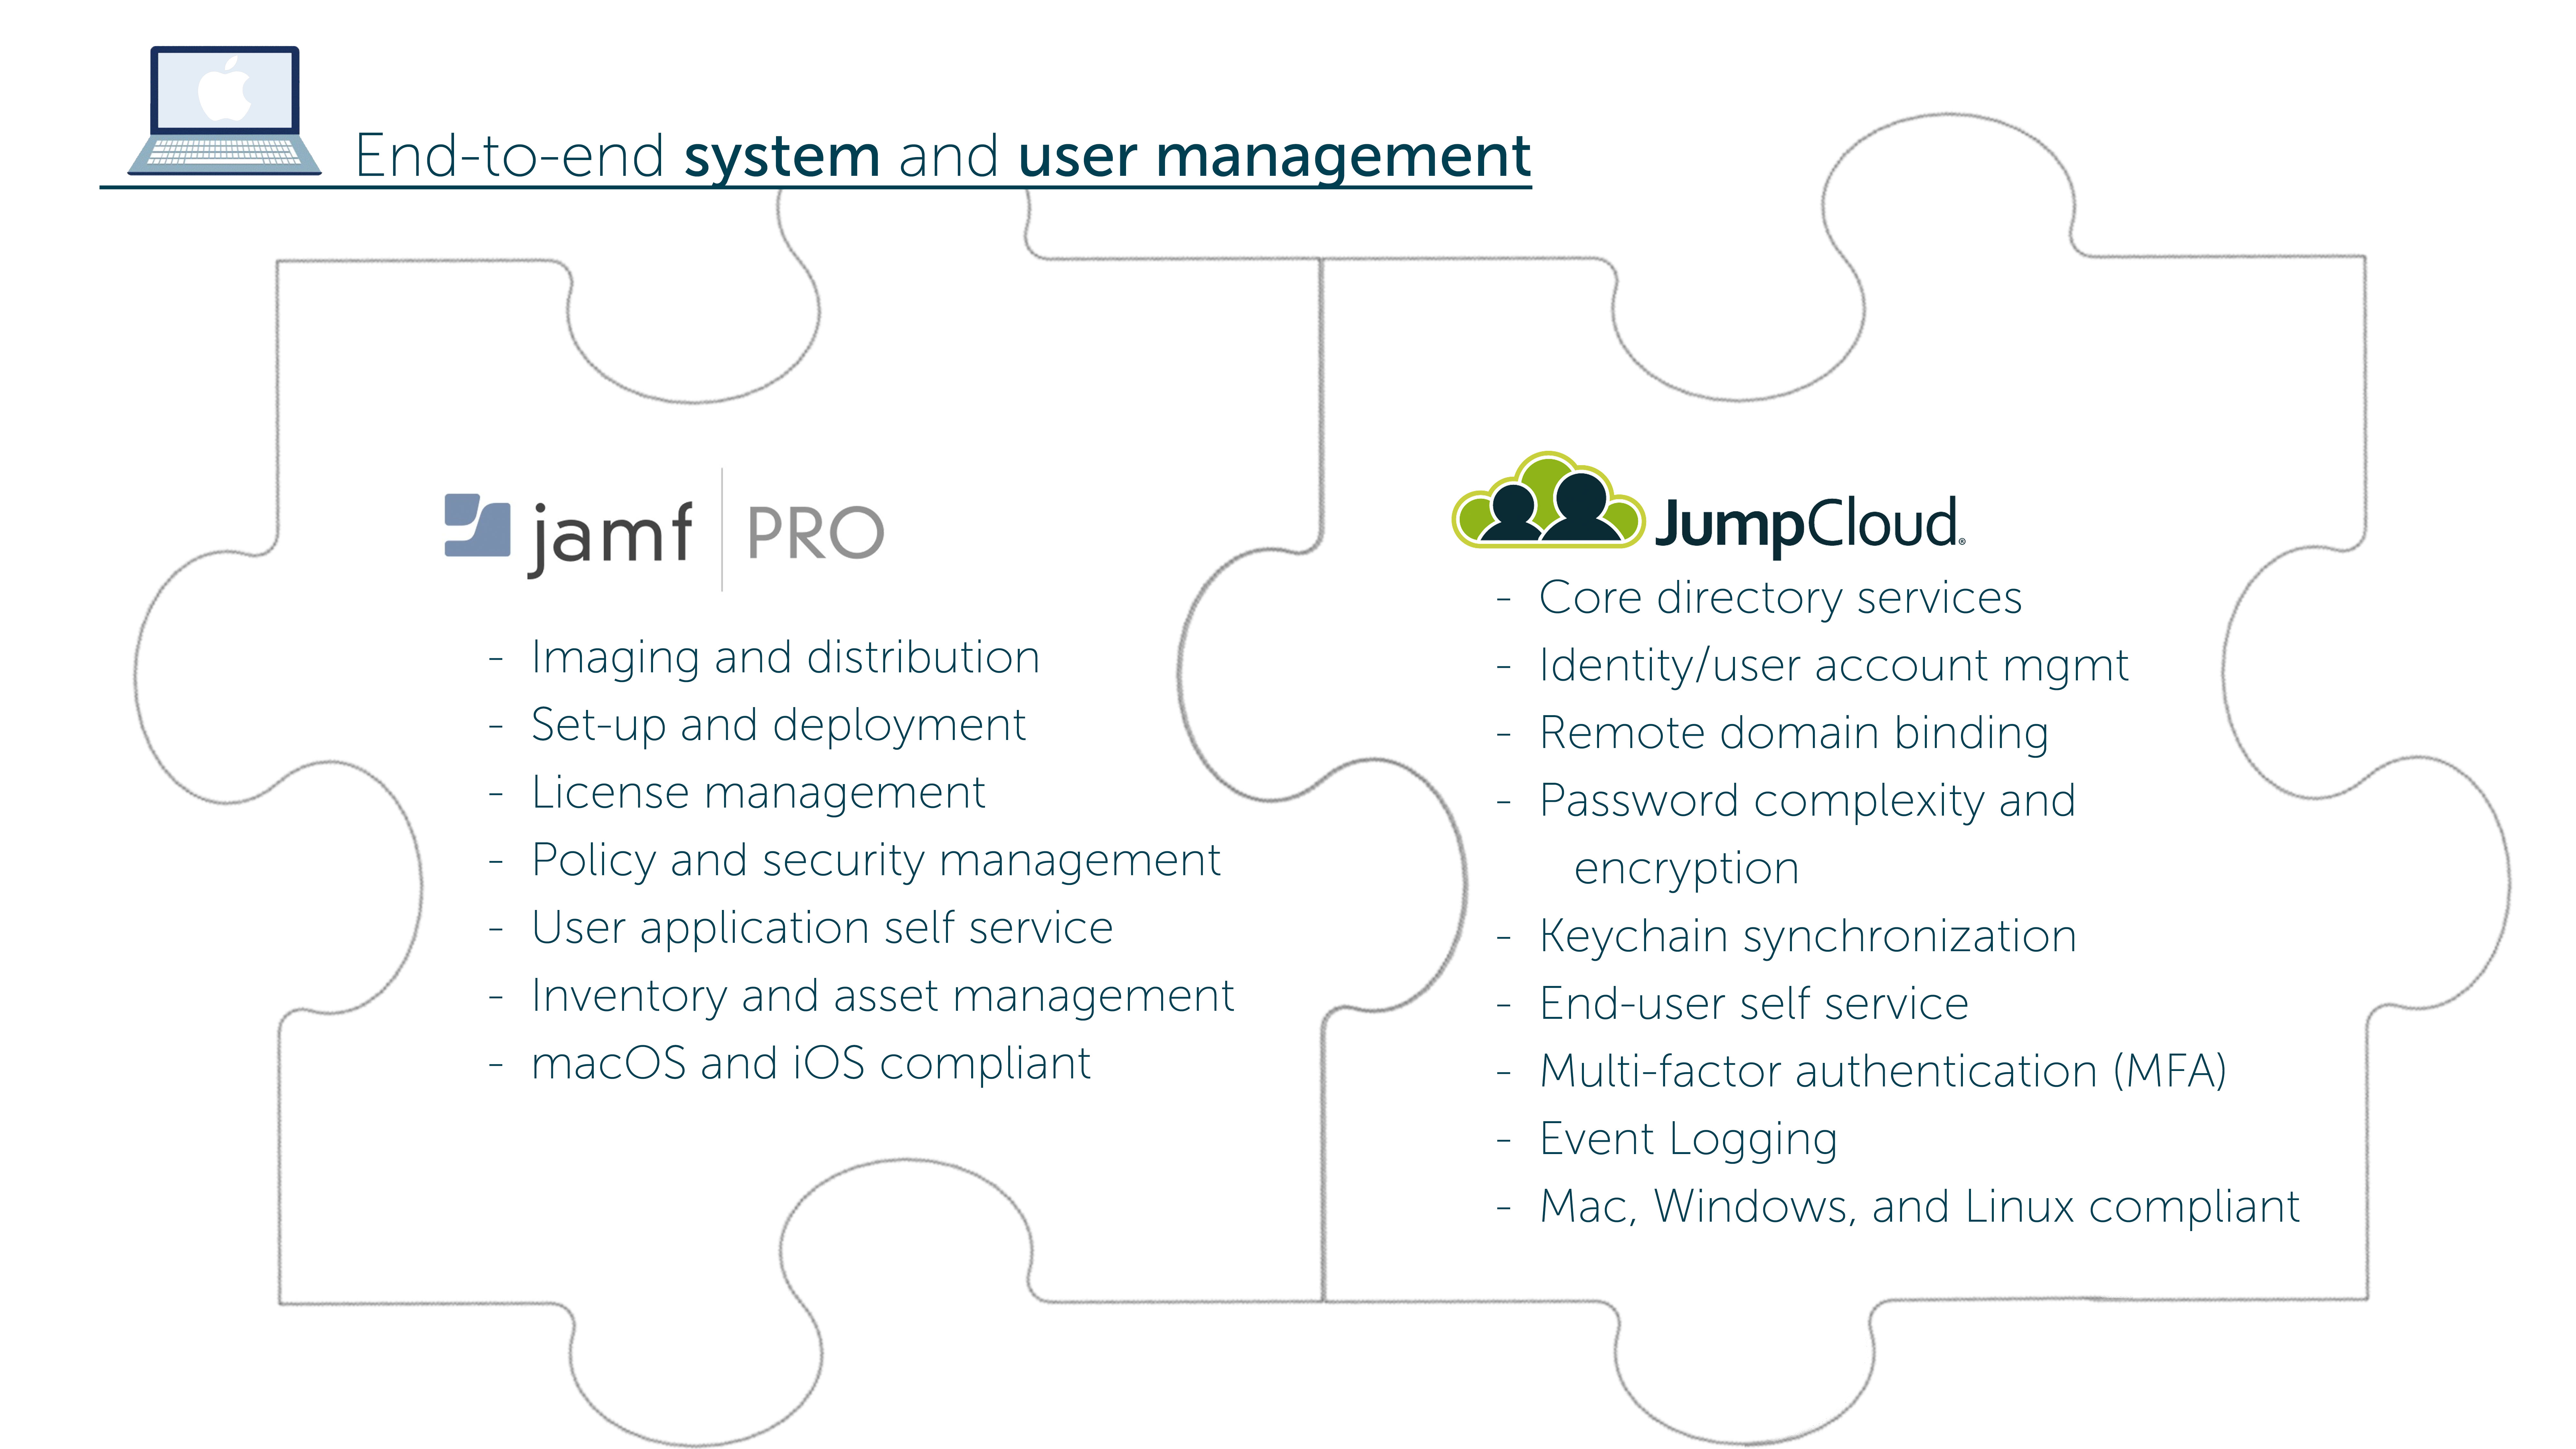 jamf and jumpcloud mac user management